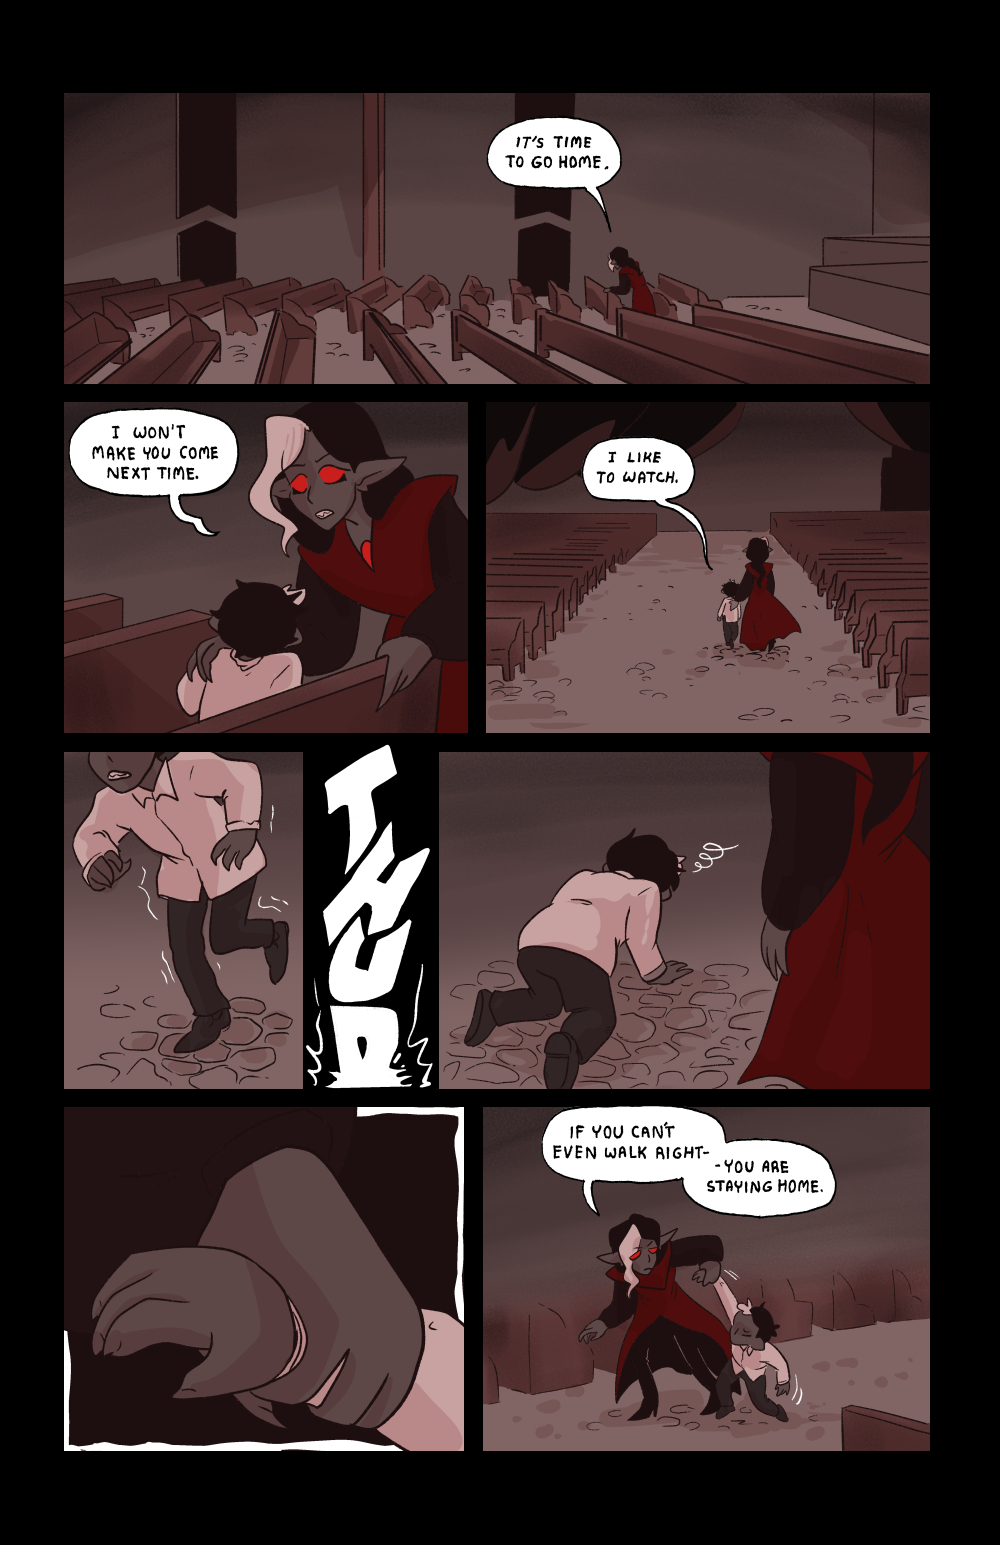 chapter7 Page166